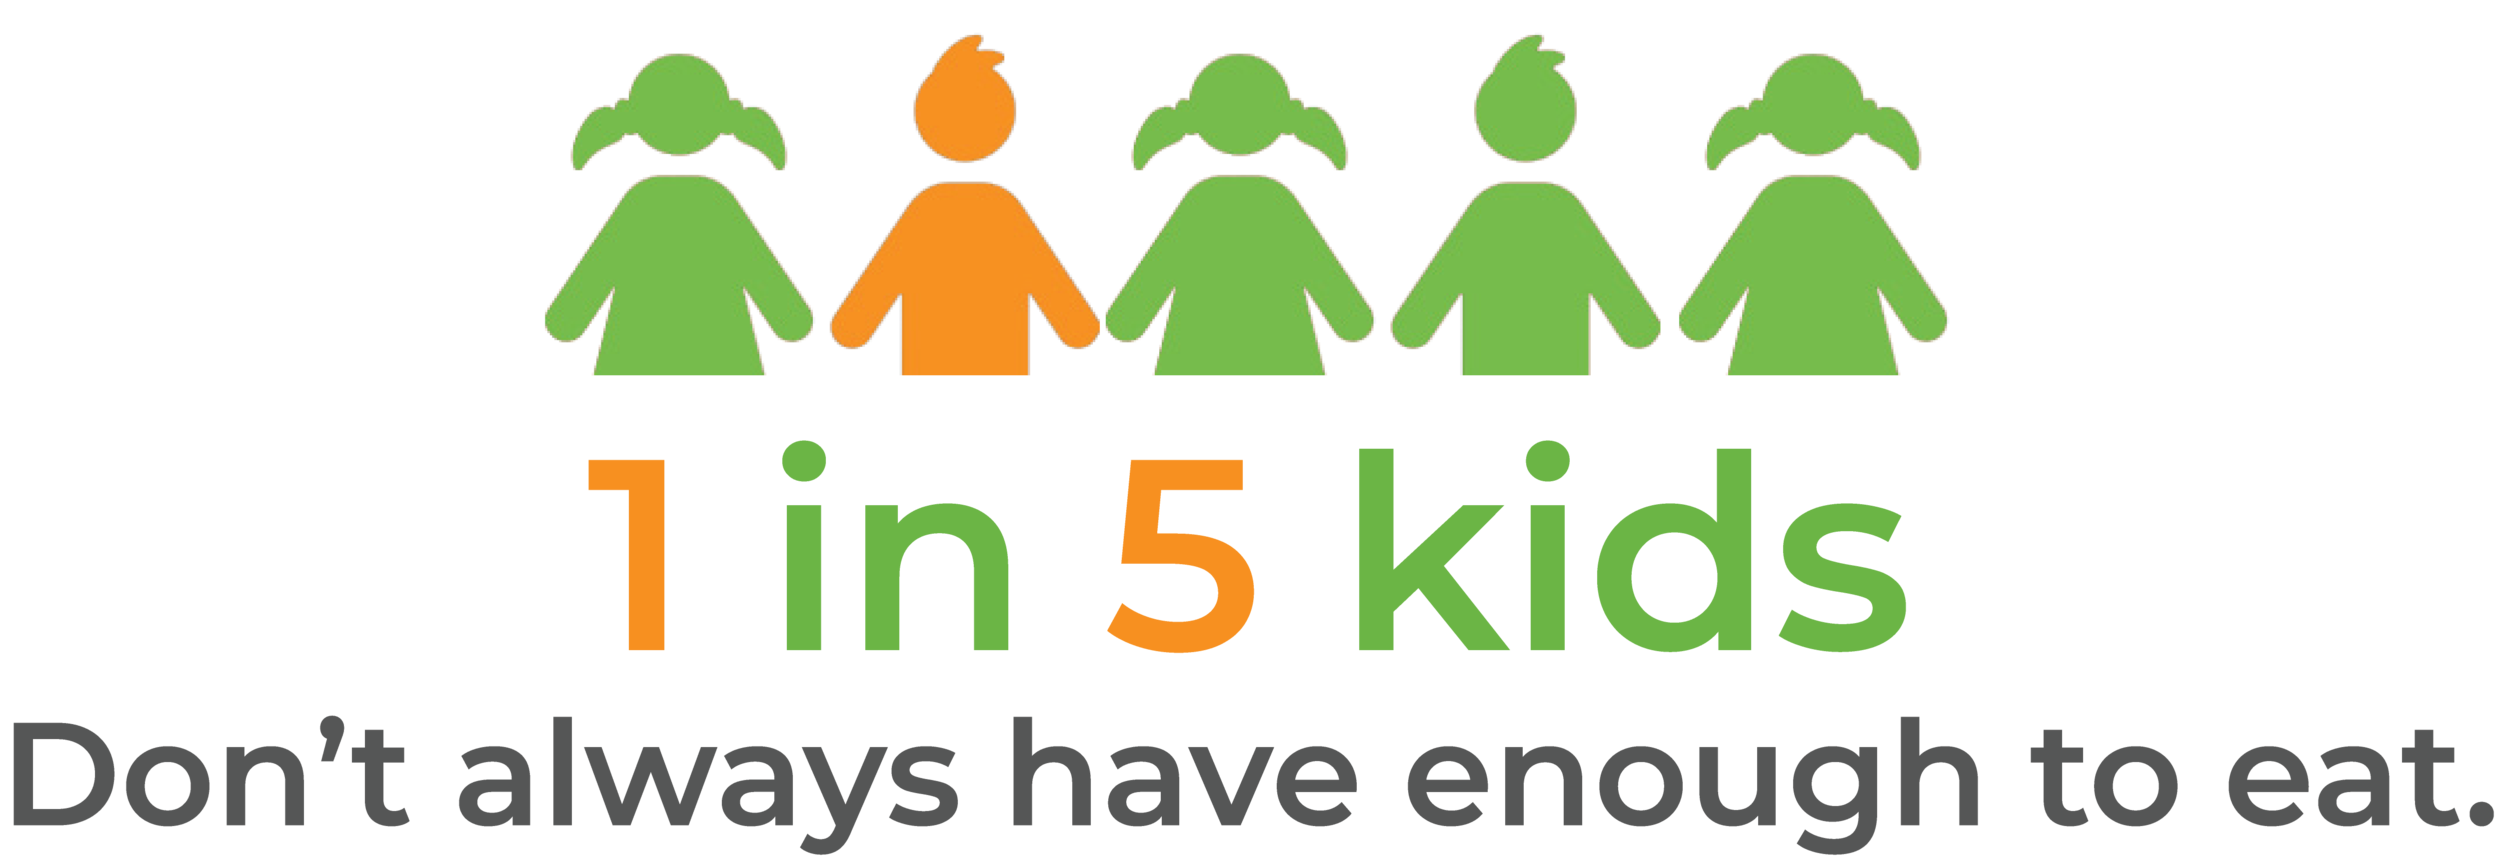 1 in 5 kids.png